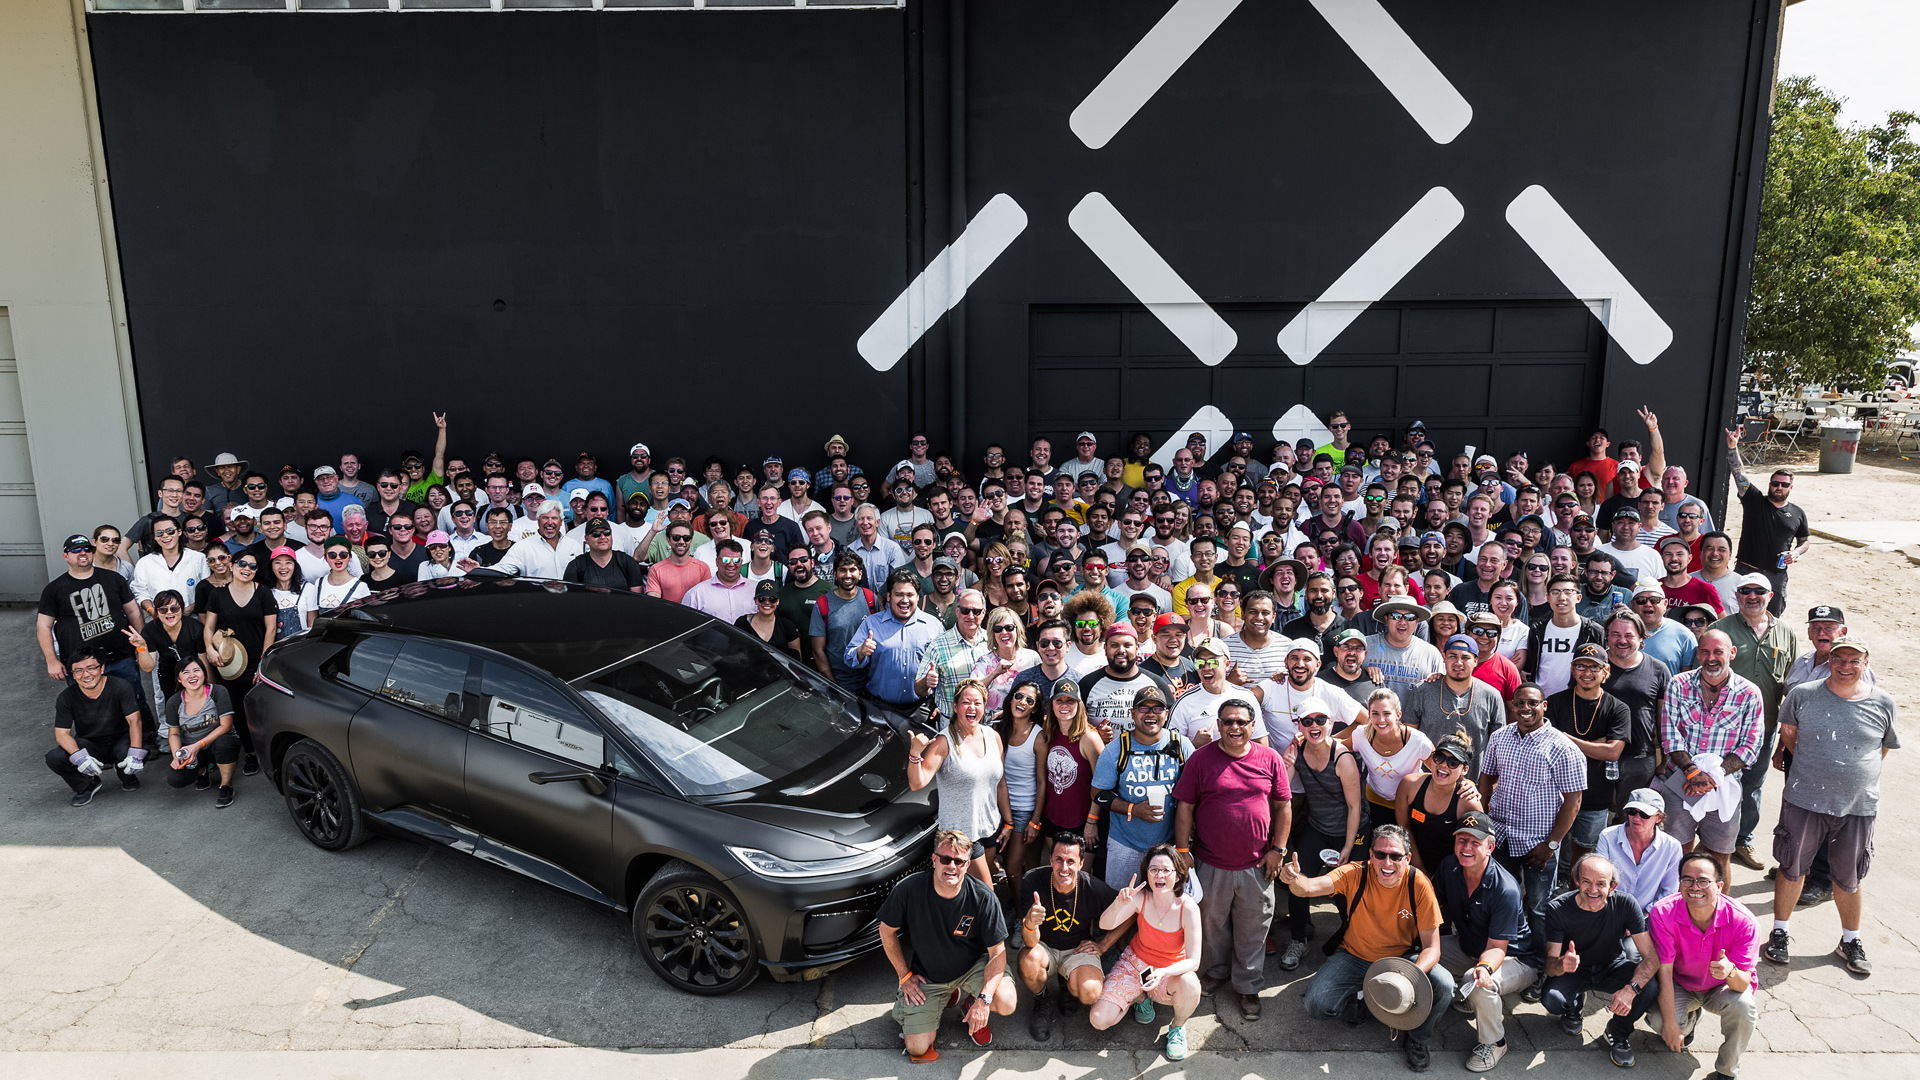 Faraday Future plant in Hanford, California